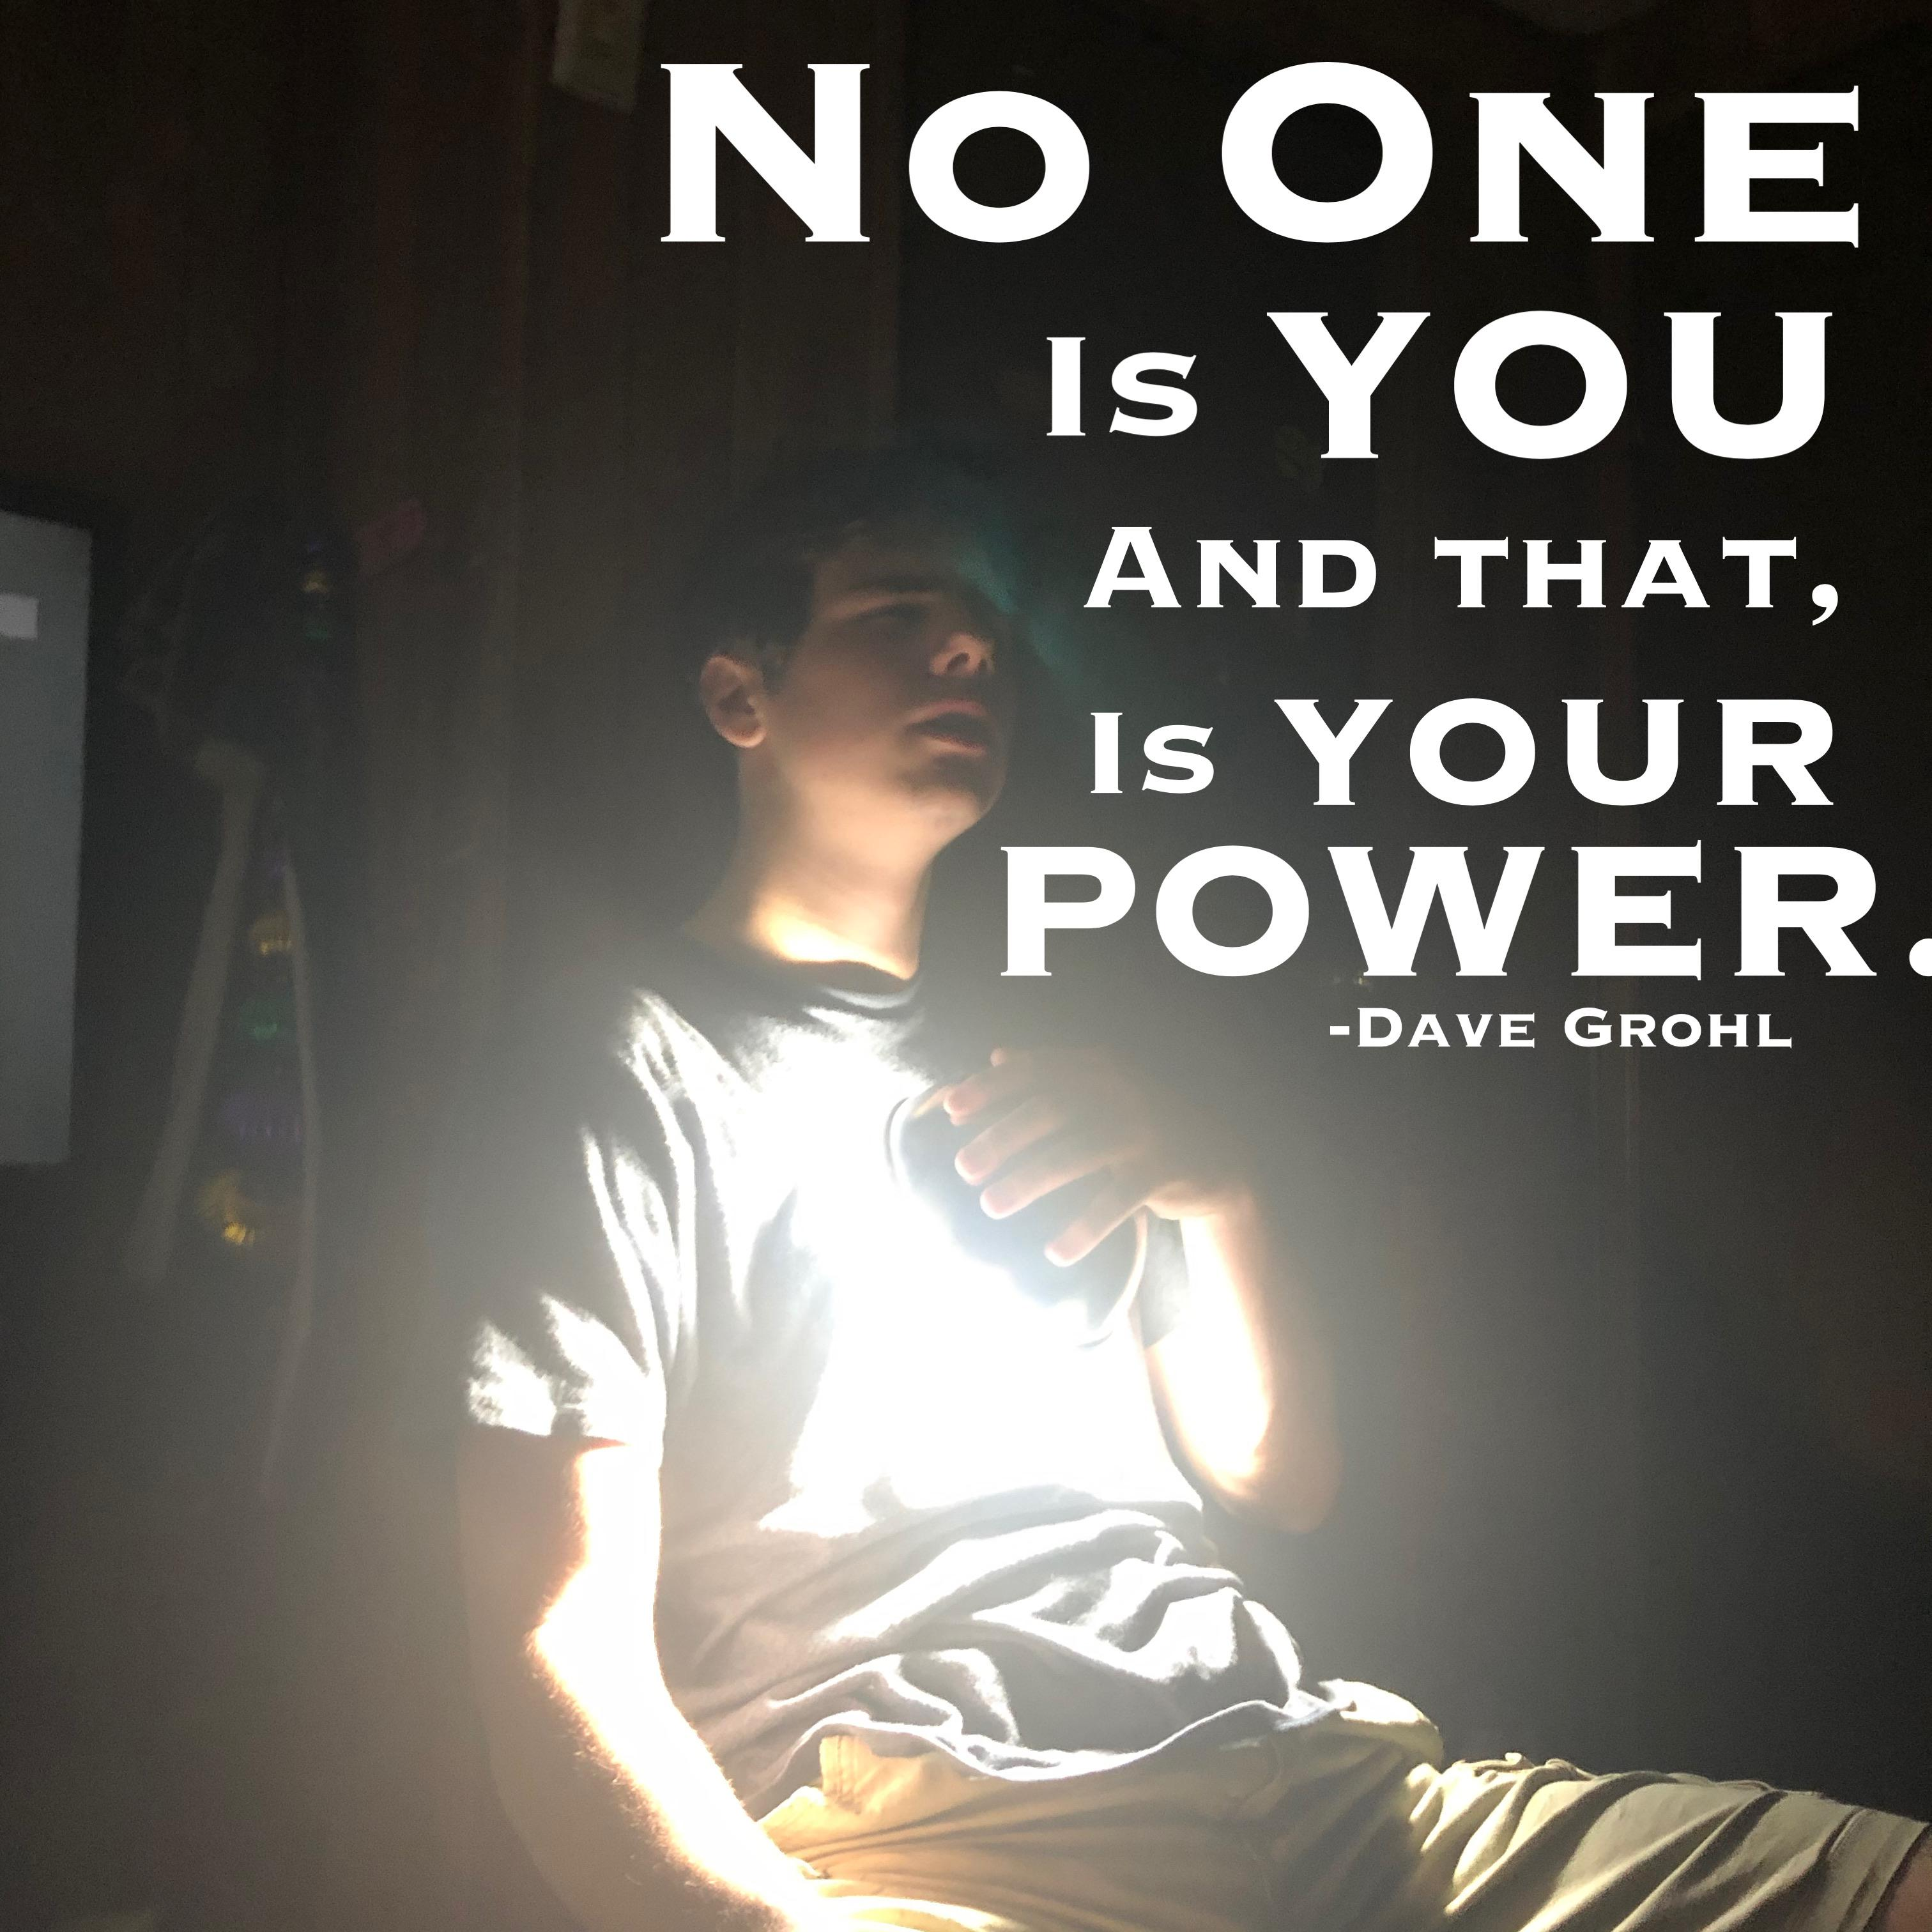 No one is you, and that, is your power. -Dave Grohl [3024×3024]